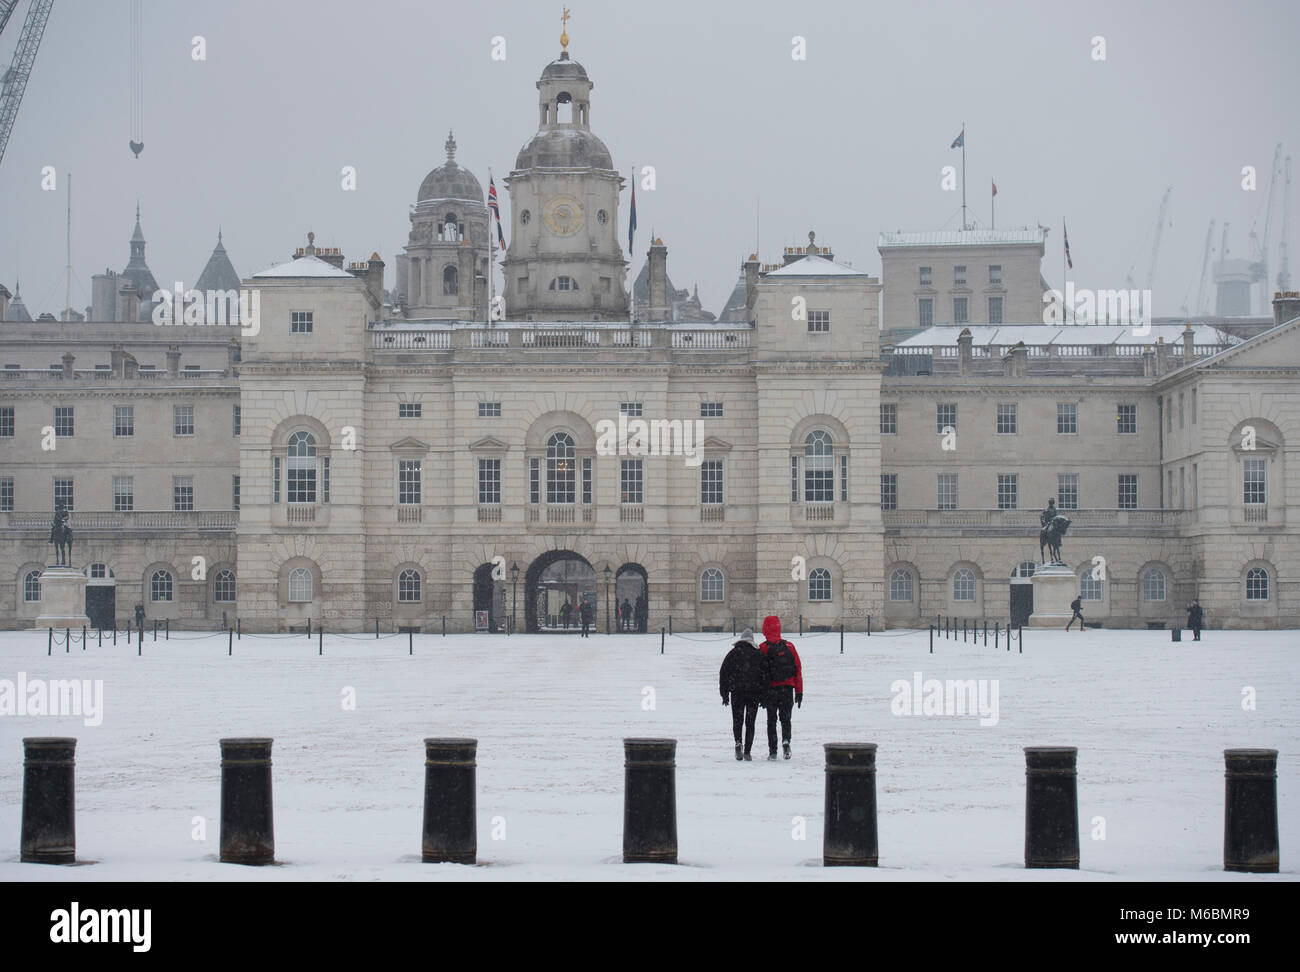 Horse Guards, London, UK. 1 March 2018. Overnight snow covers Horse Guards Parade. - Stock Image